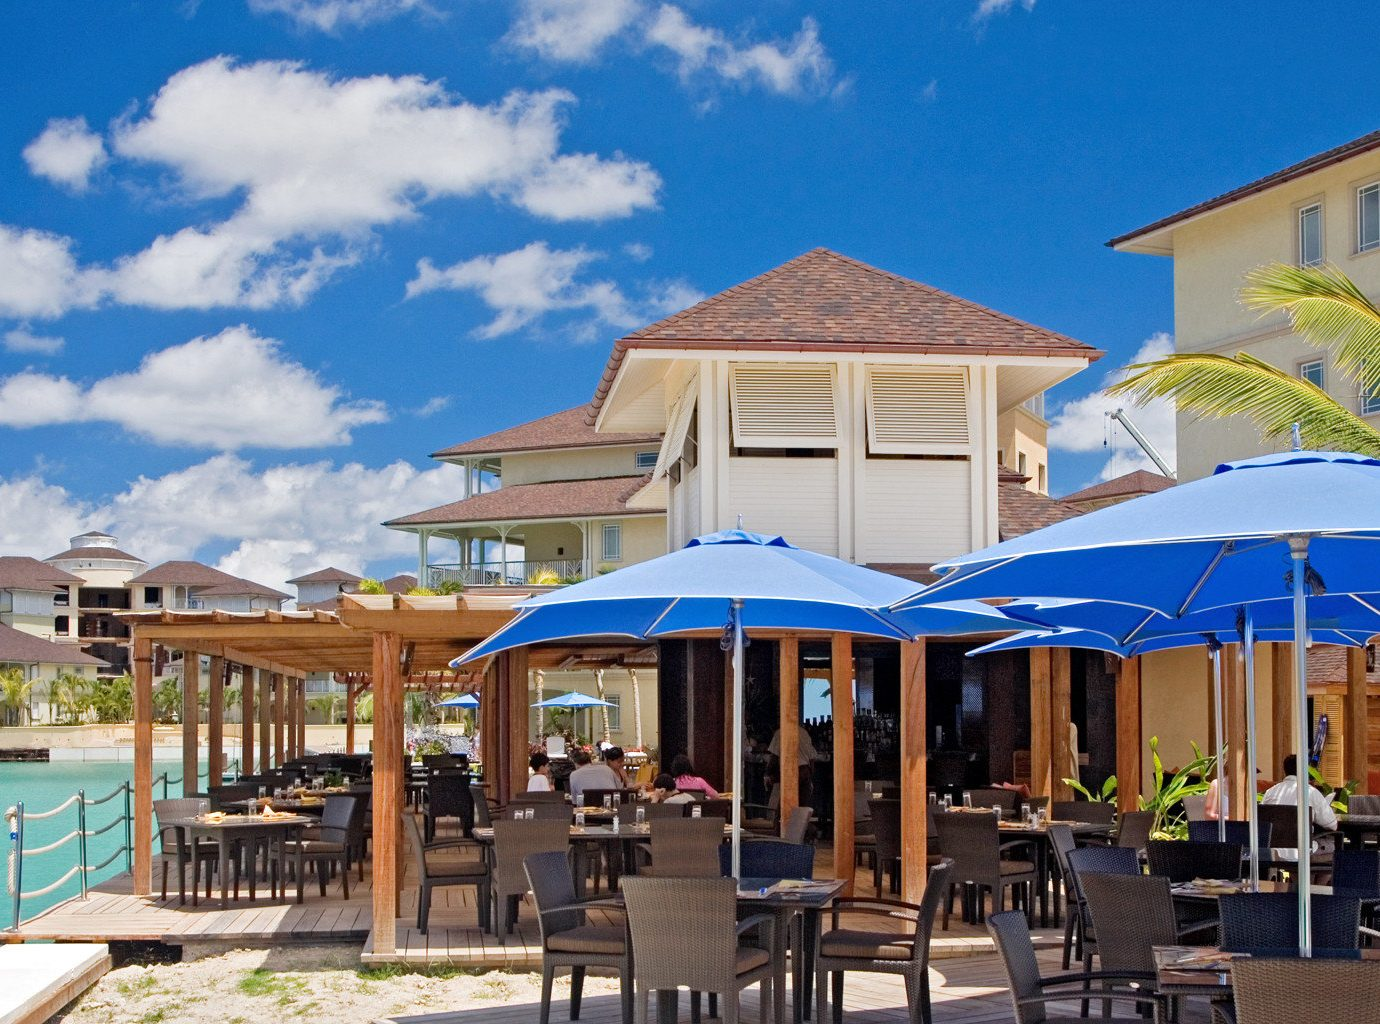 Beach Beachfront Dining Drink Eat Grounds Hotels Island Romance outdoor chair sky table umbrella leisure property Resort Deck lawn vacation estate wooden real estate restaurant Villa set furniture several shore